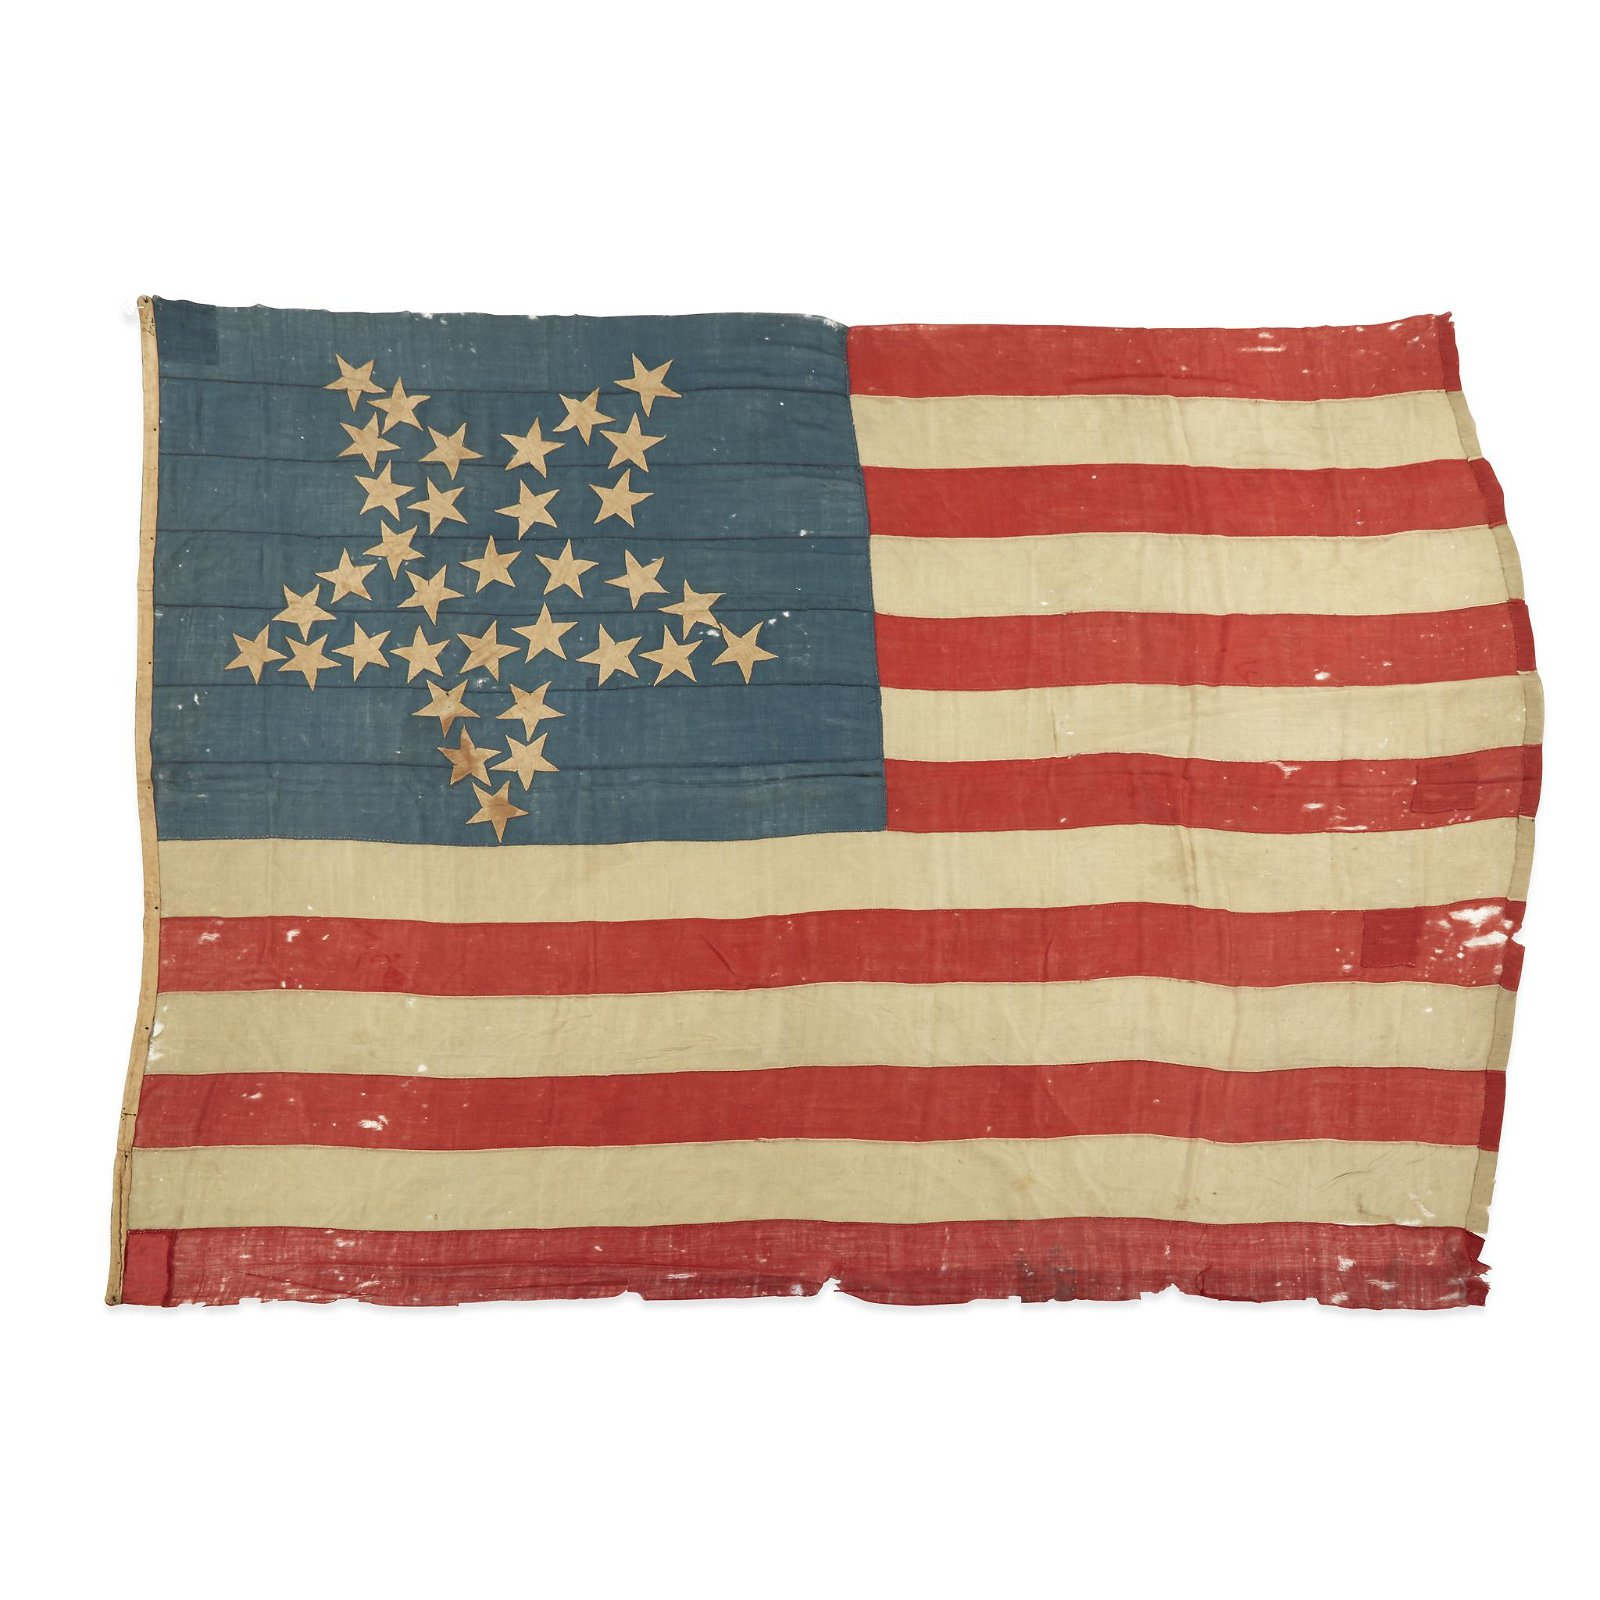 A 34-Star Great Luminary American Flag